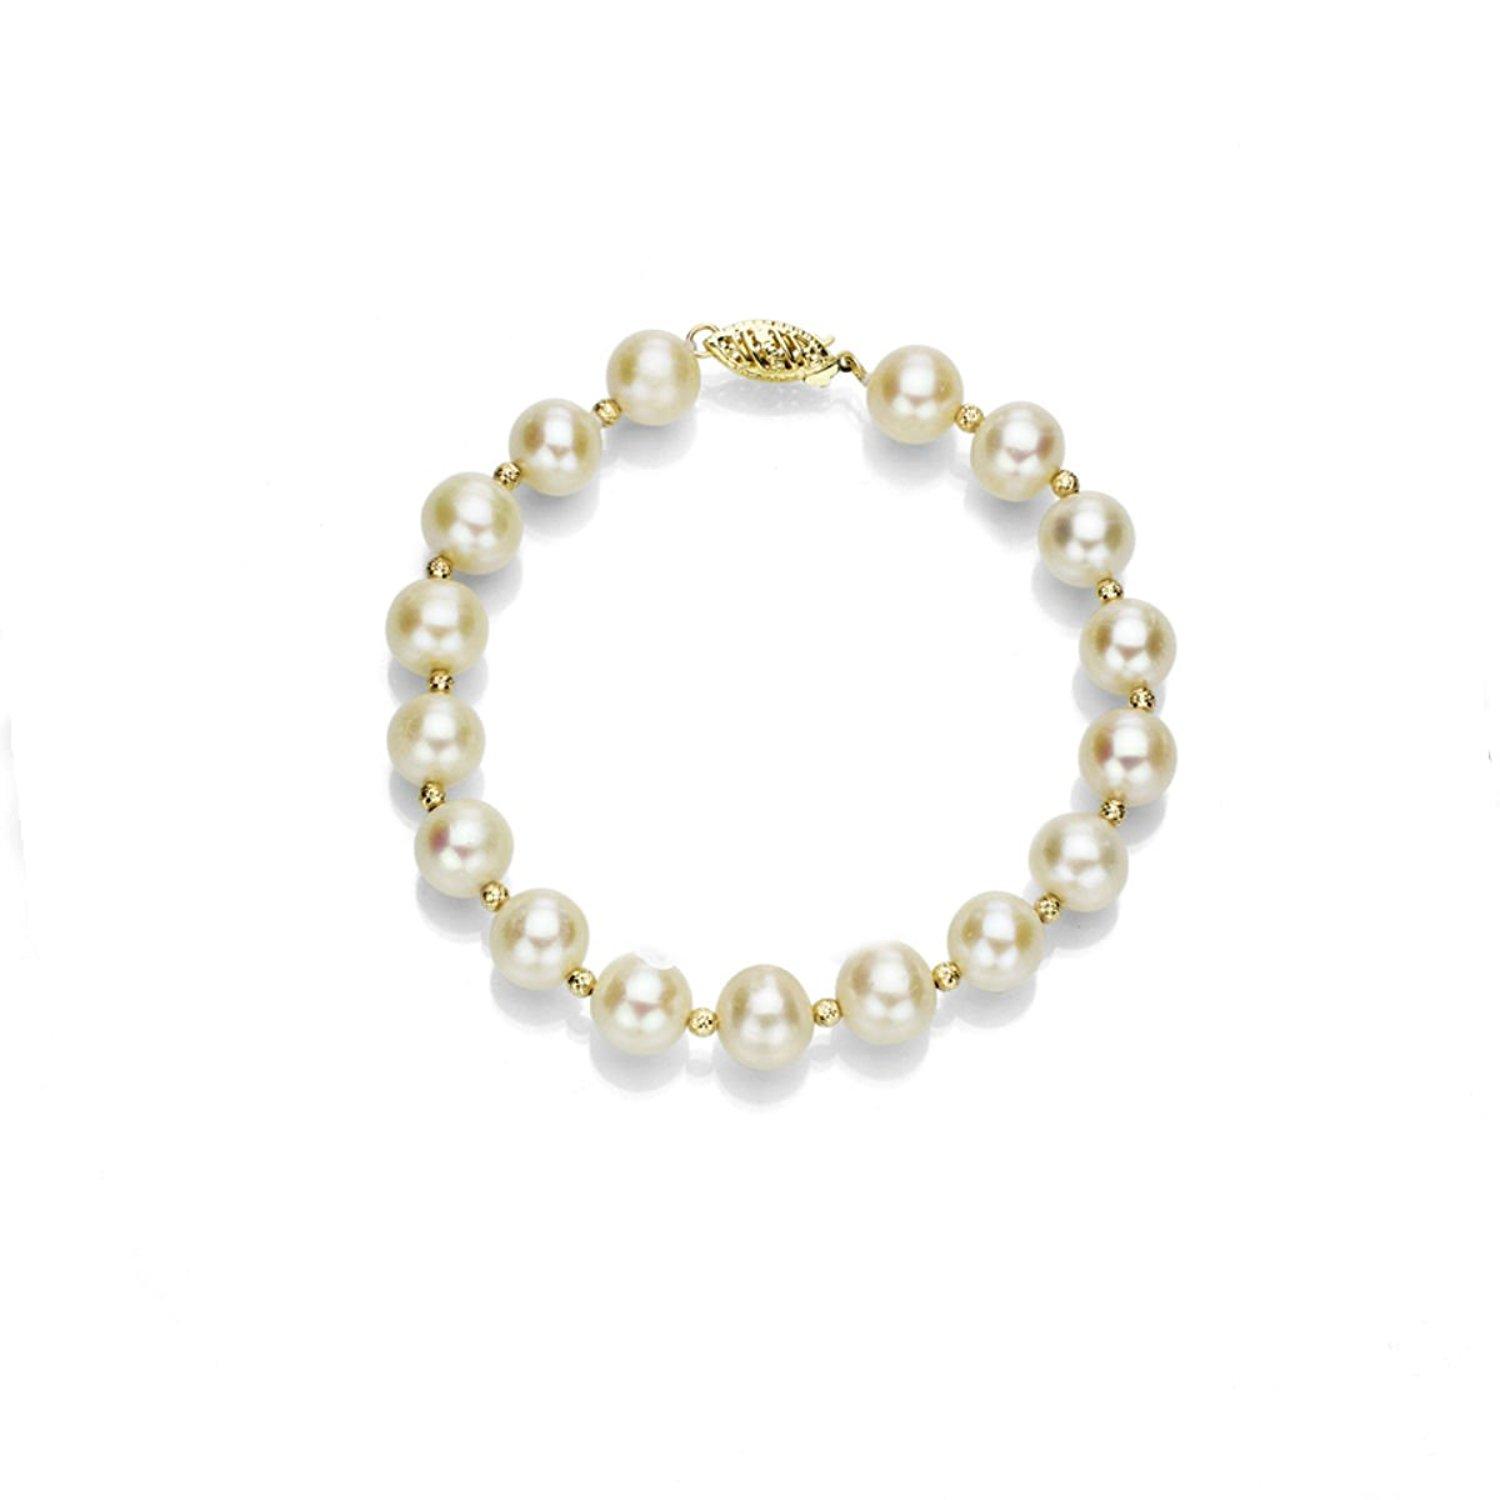 La Regis Jewelry 14k Yellow Gold White Freshwater Cultured Pearl Bracelet with 3mm Sparkling Gold Beads